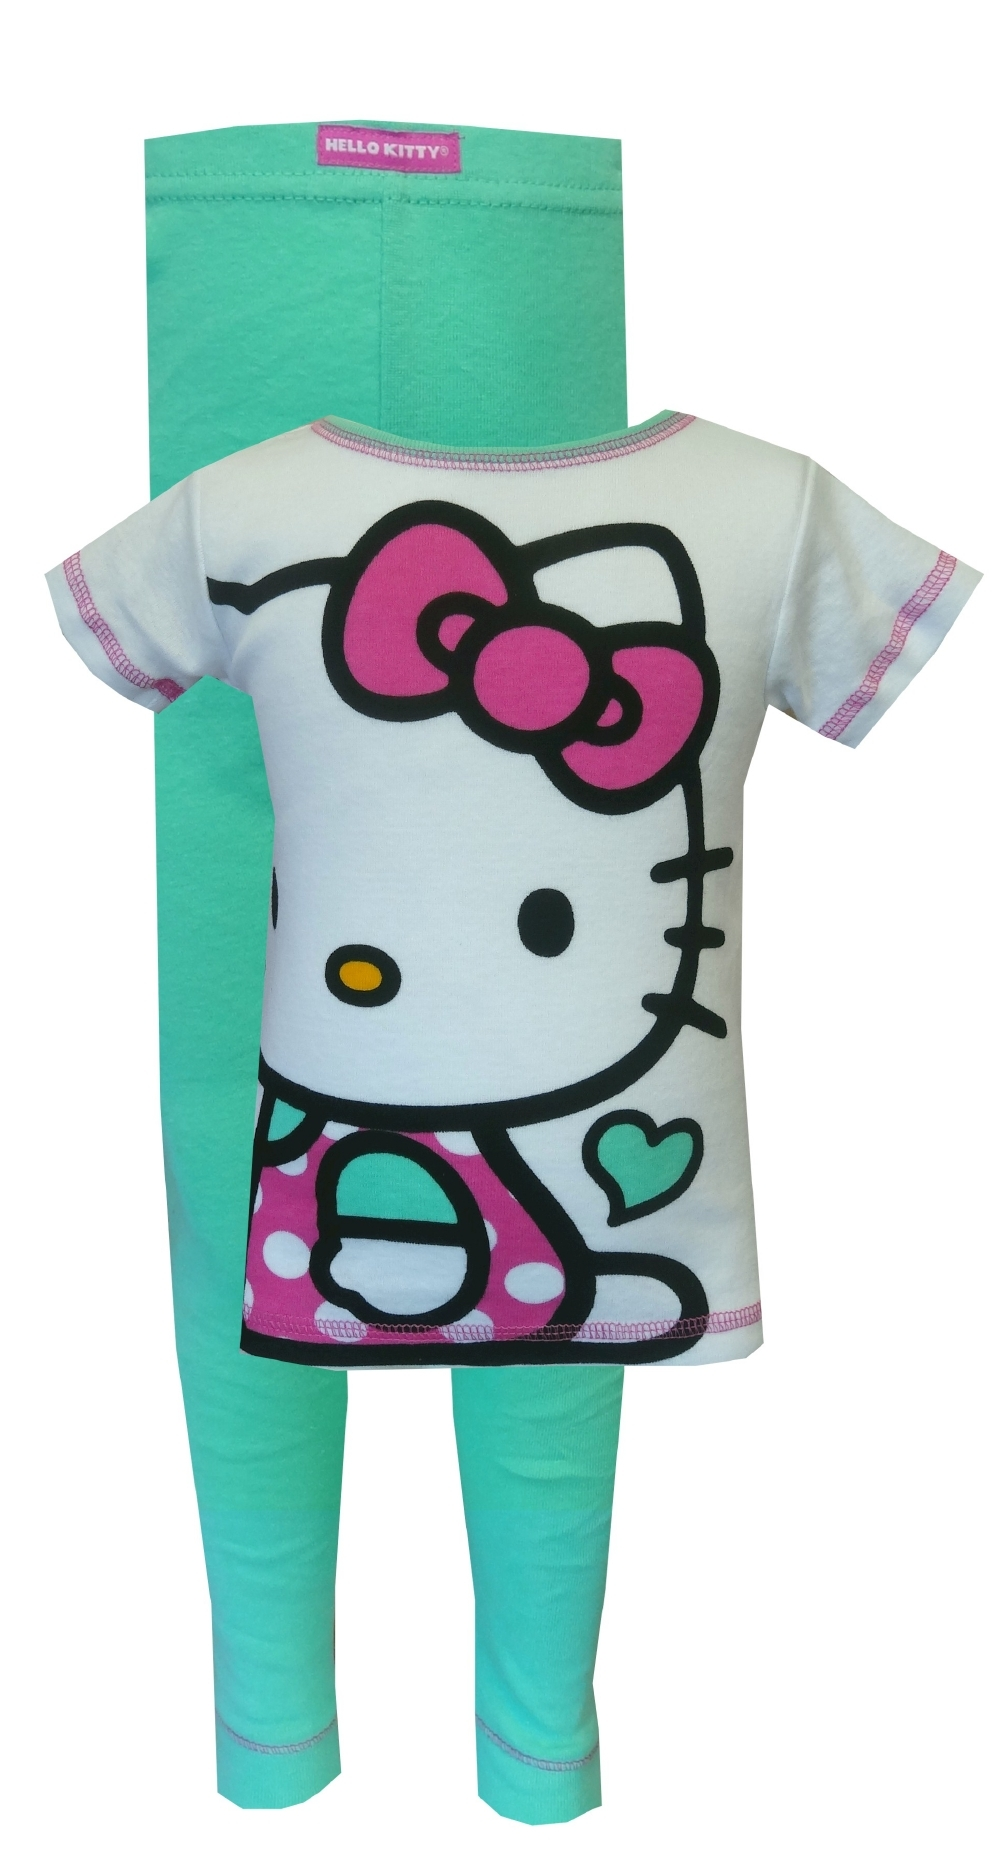 Hello Kitty Pink and Mint Green Pajama Set for girls